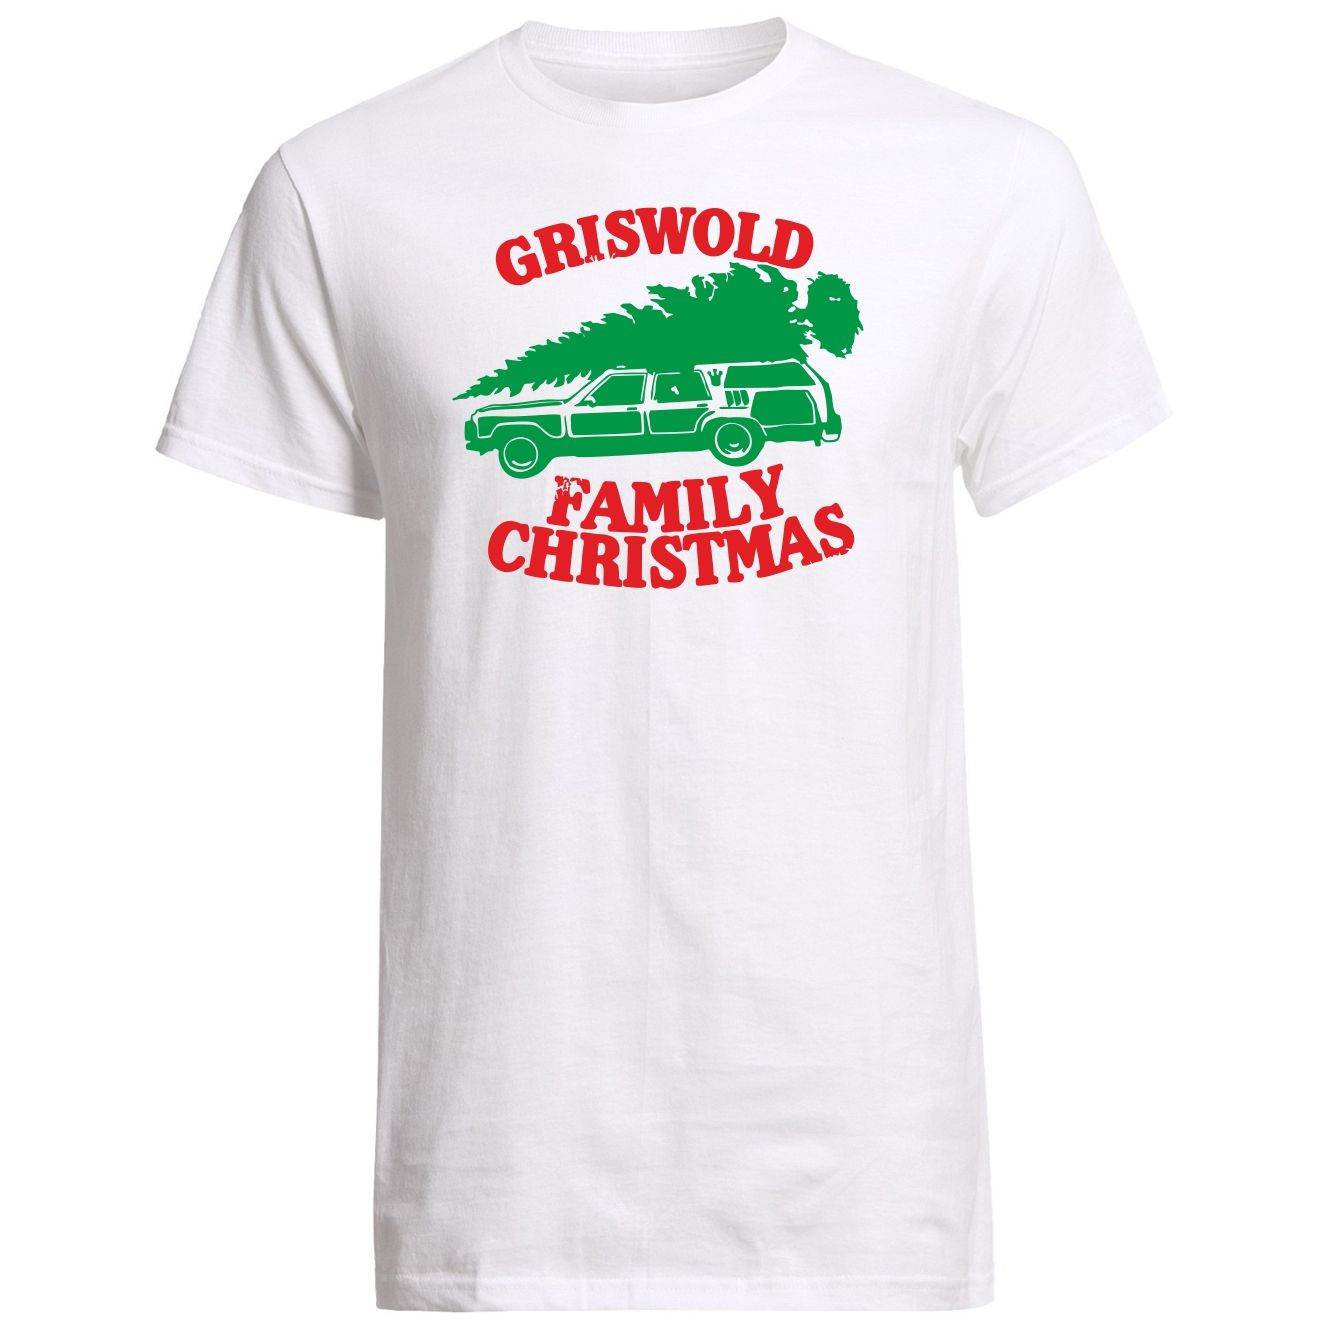 griswold family christmas t shirt and free sticker